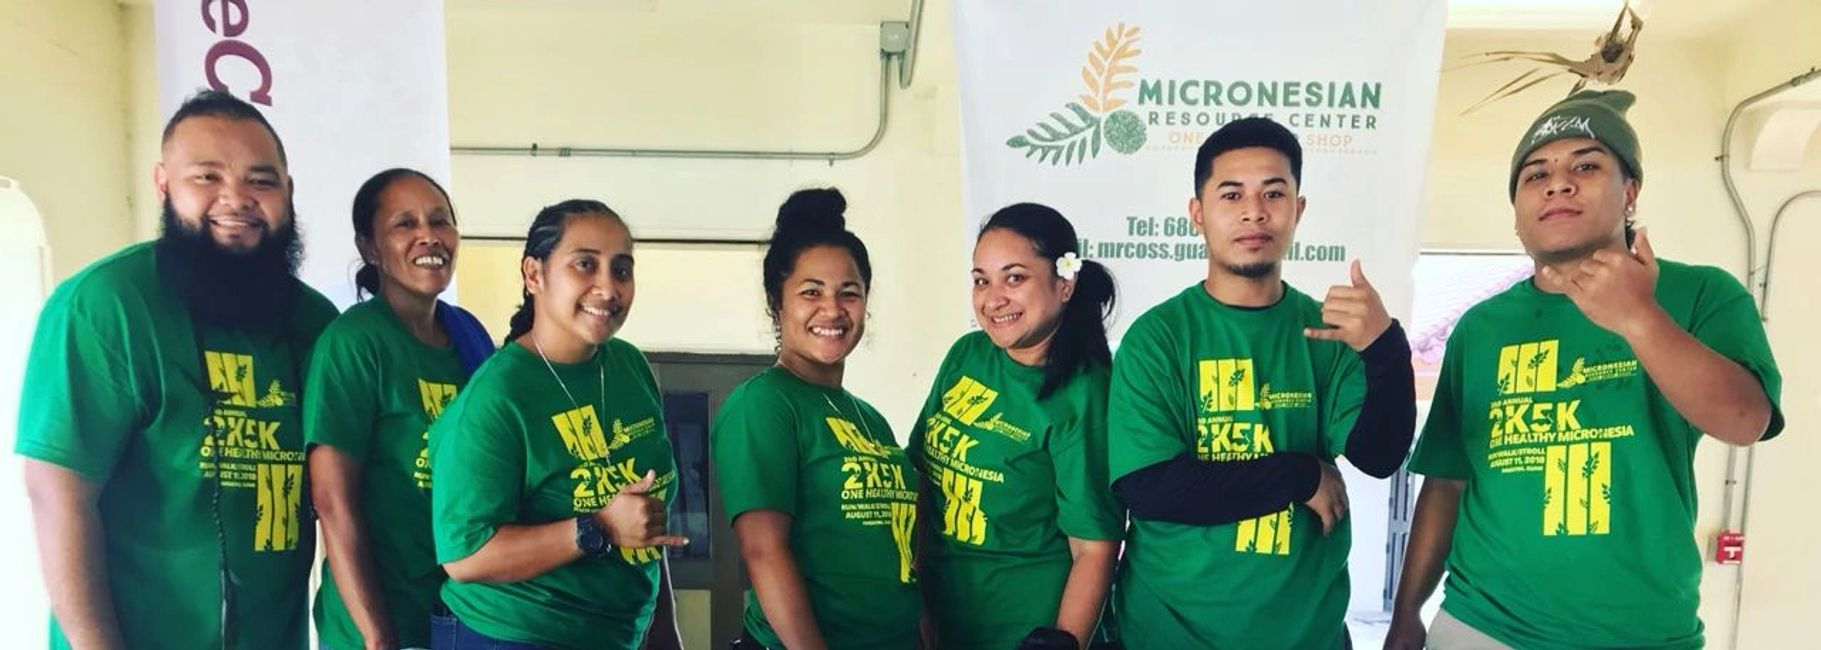 The Micronesian Resource Center One-Stop Shop staff and volunteers.